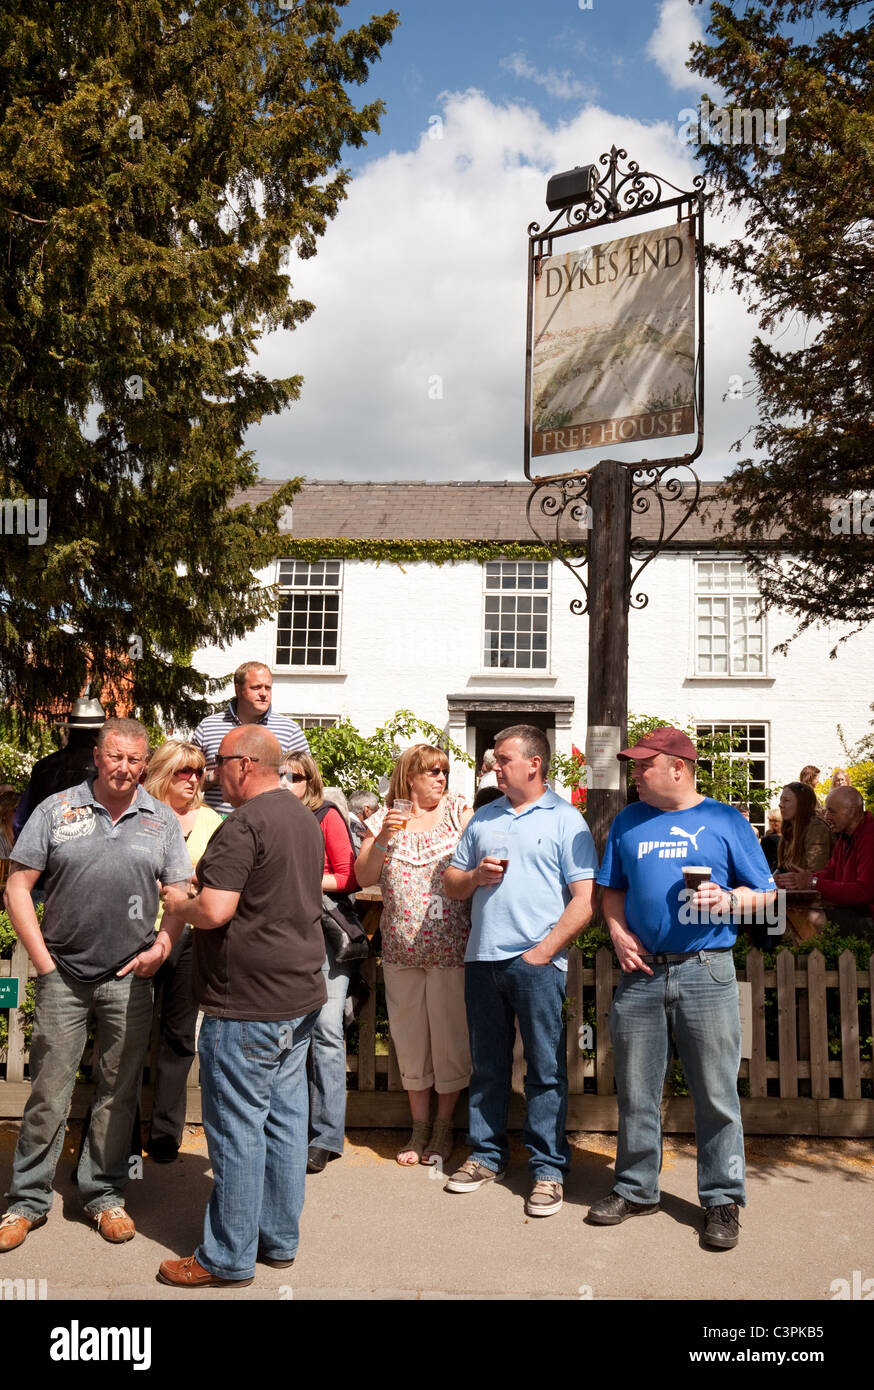 People enjoying a drink at the Dykes End village pub, Reach, Cambridgeshire, UK - Stock Image